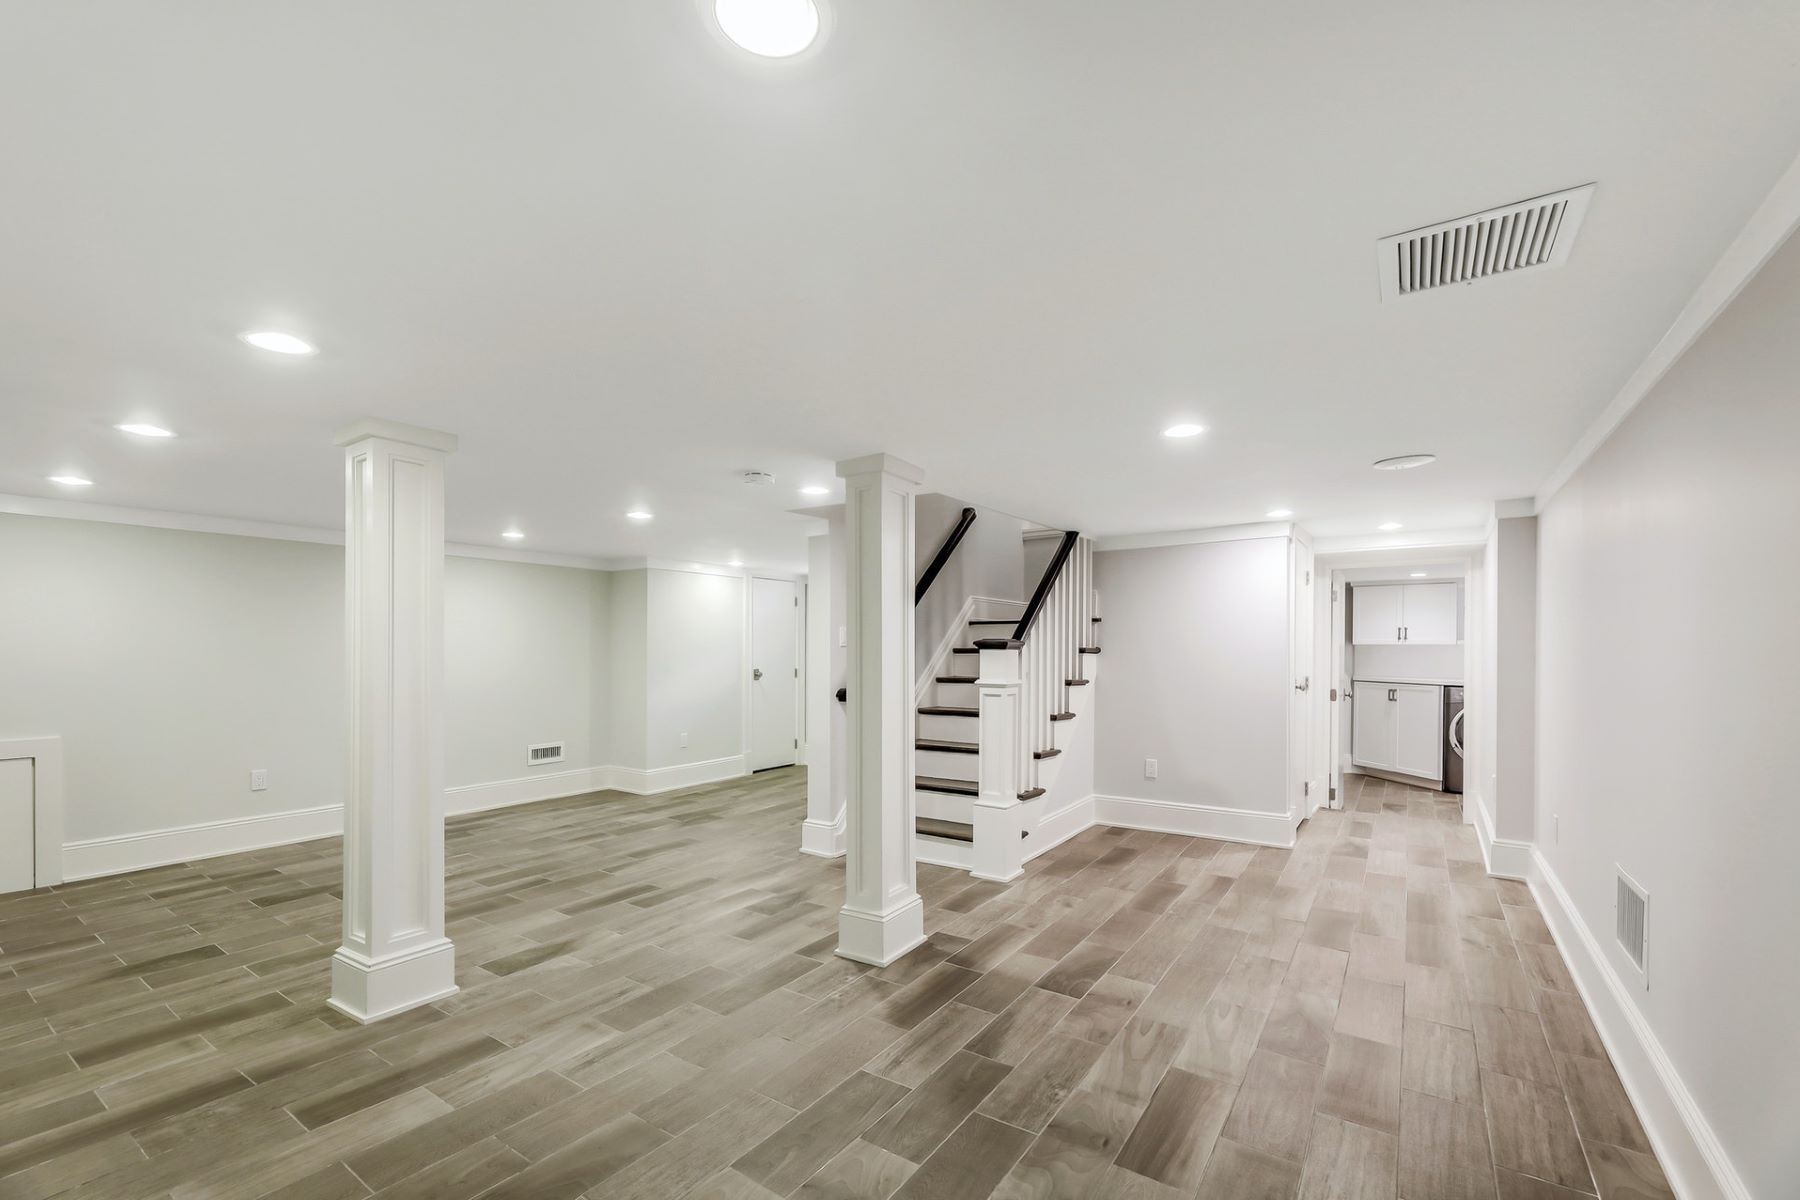 Additional photo for property listing at 88 Church St Alpine, New Jersey 07620 United States